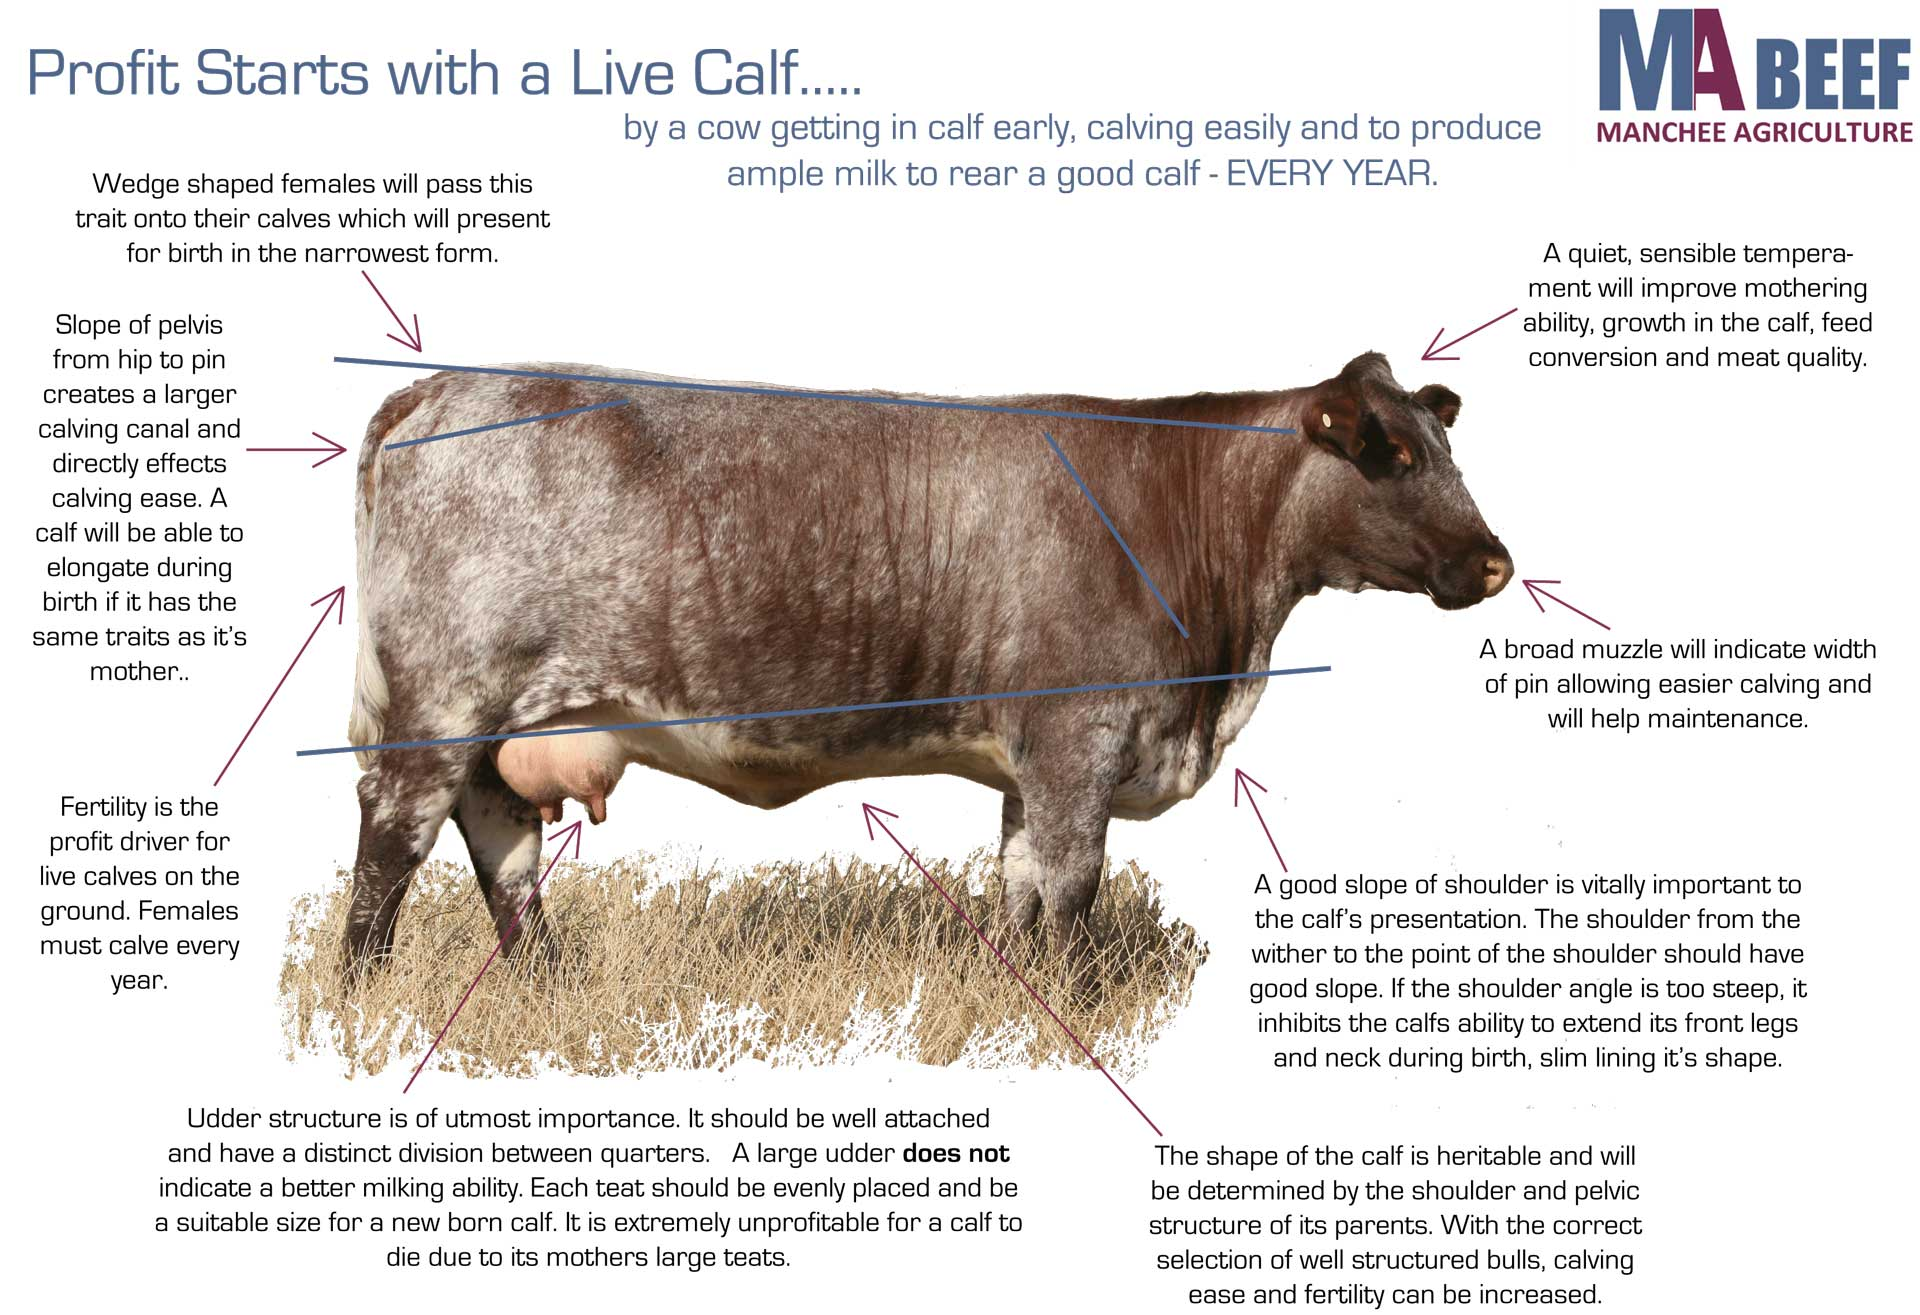 Profitability Starts with a Live Calf